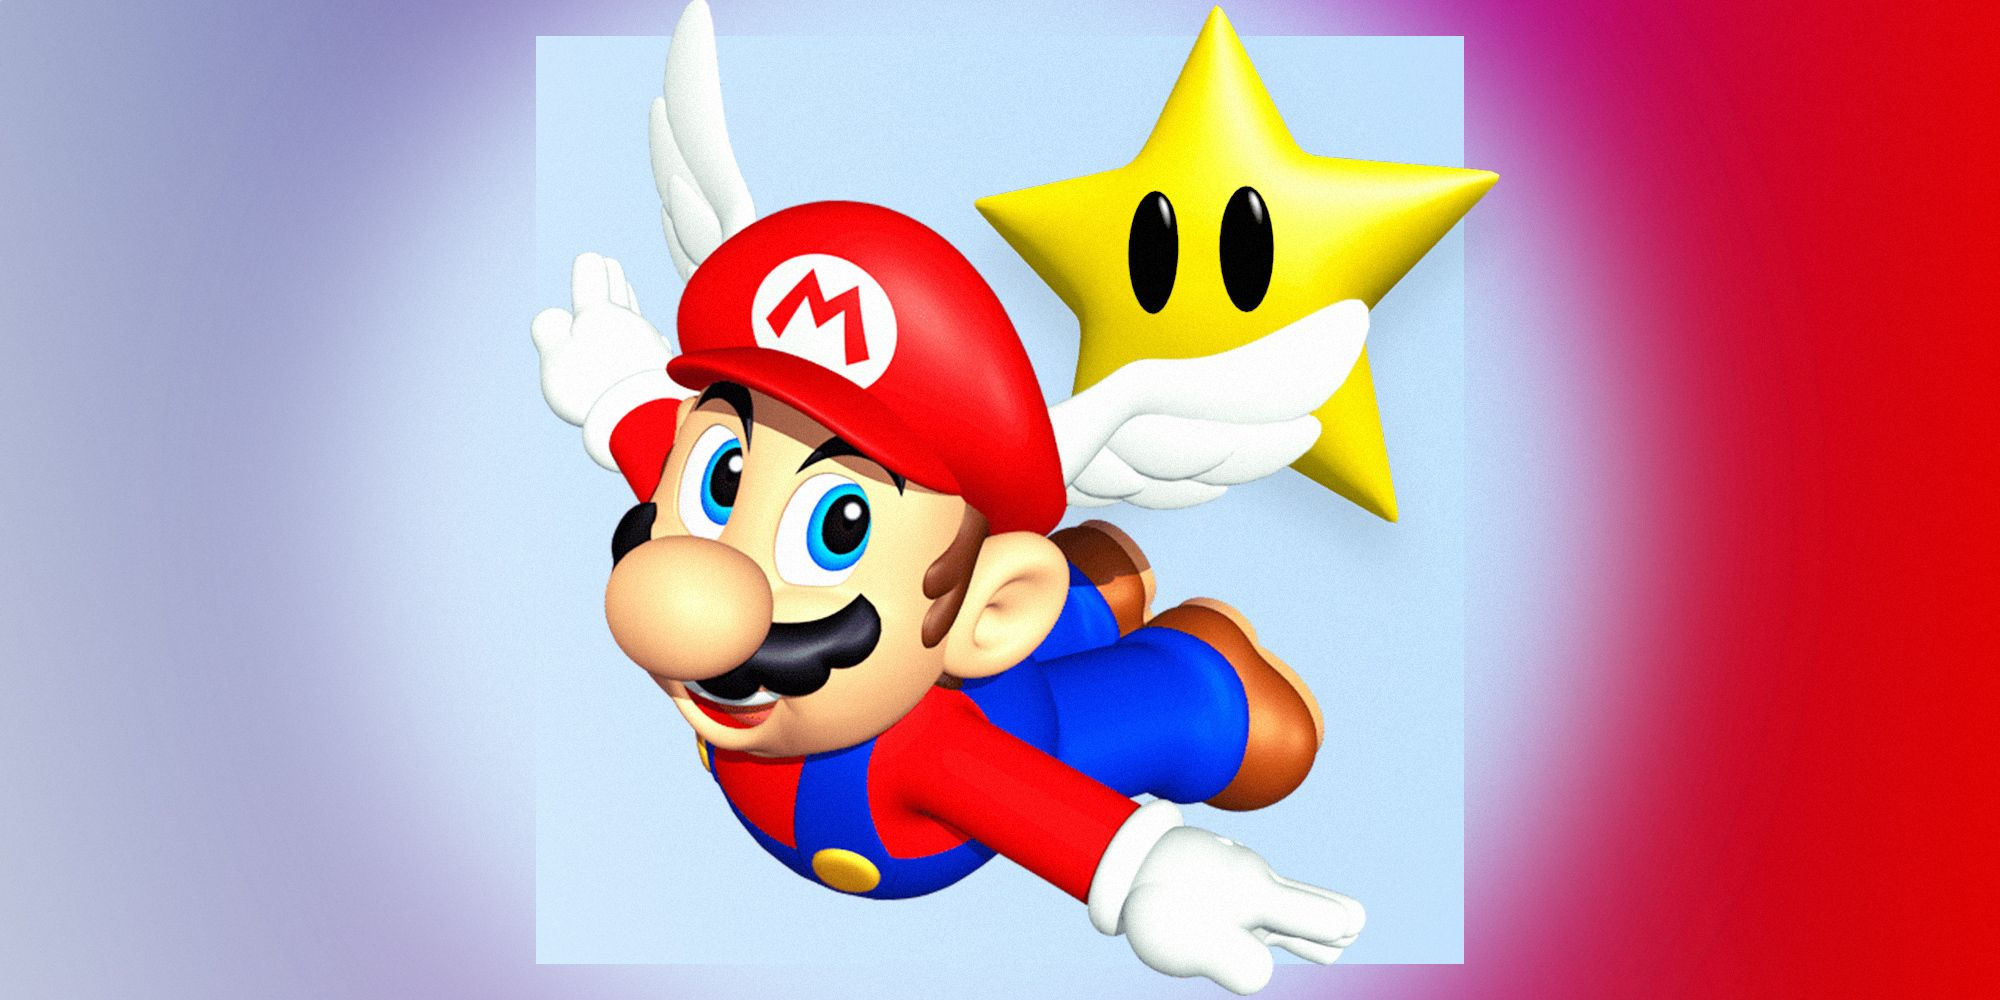 Super Mario 64 Is Nintendo's All-Time Greatest Game. It's Also Its Creepiest.